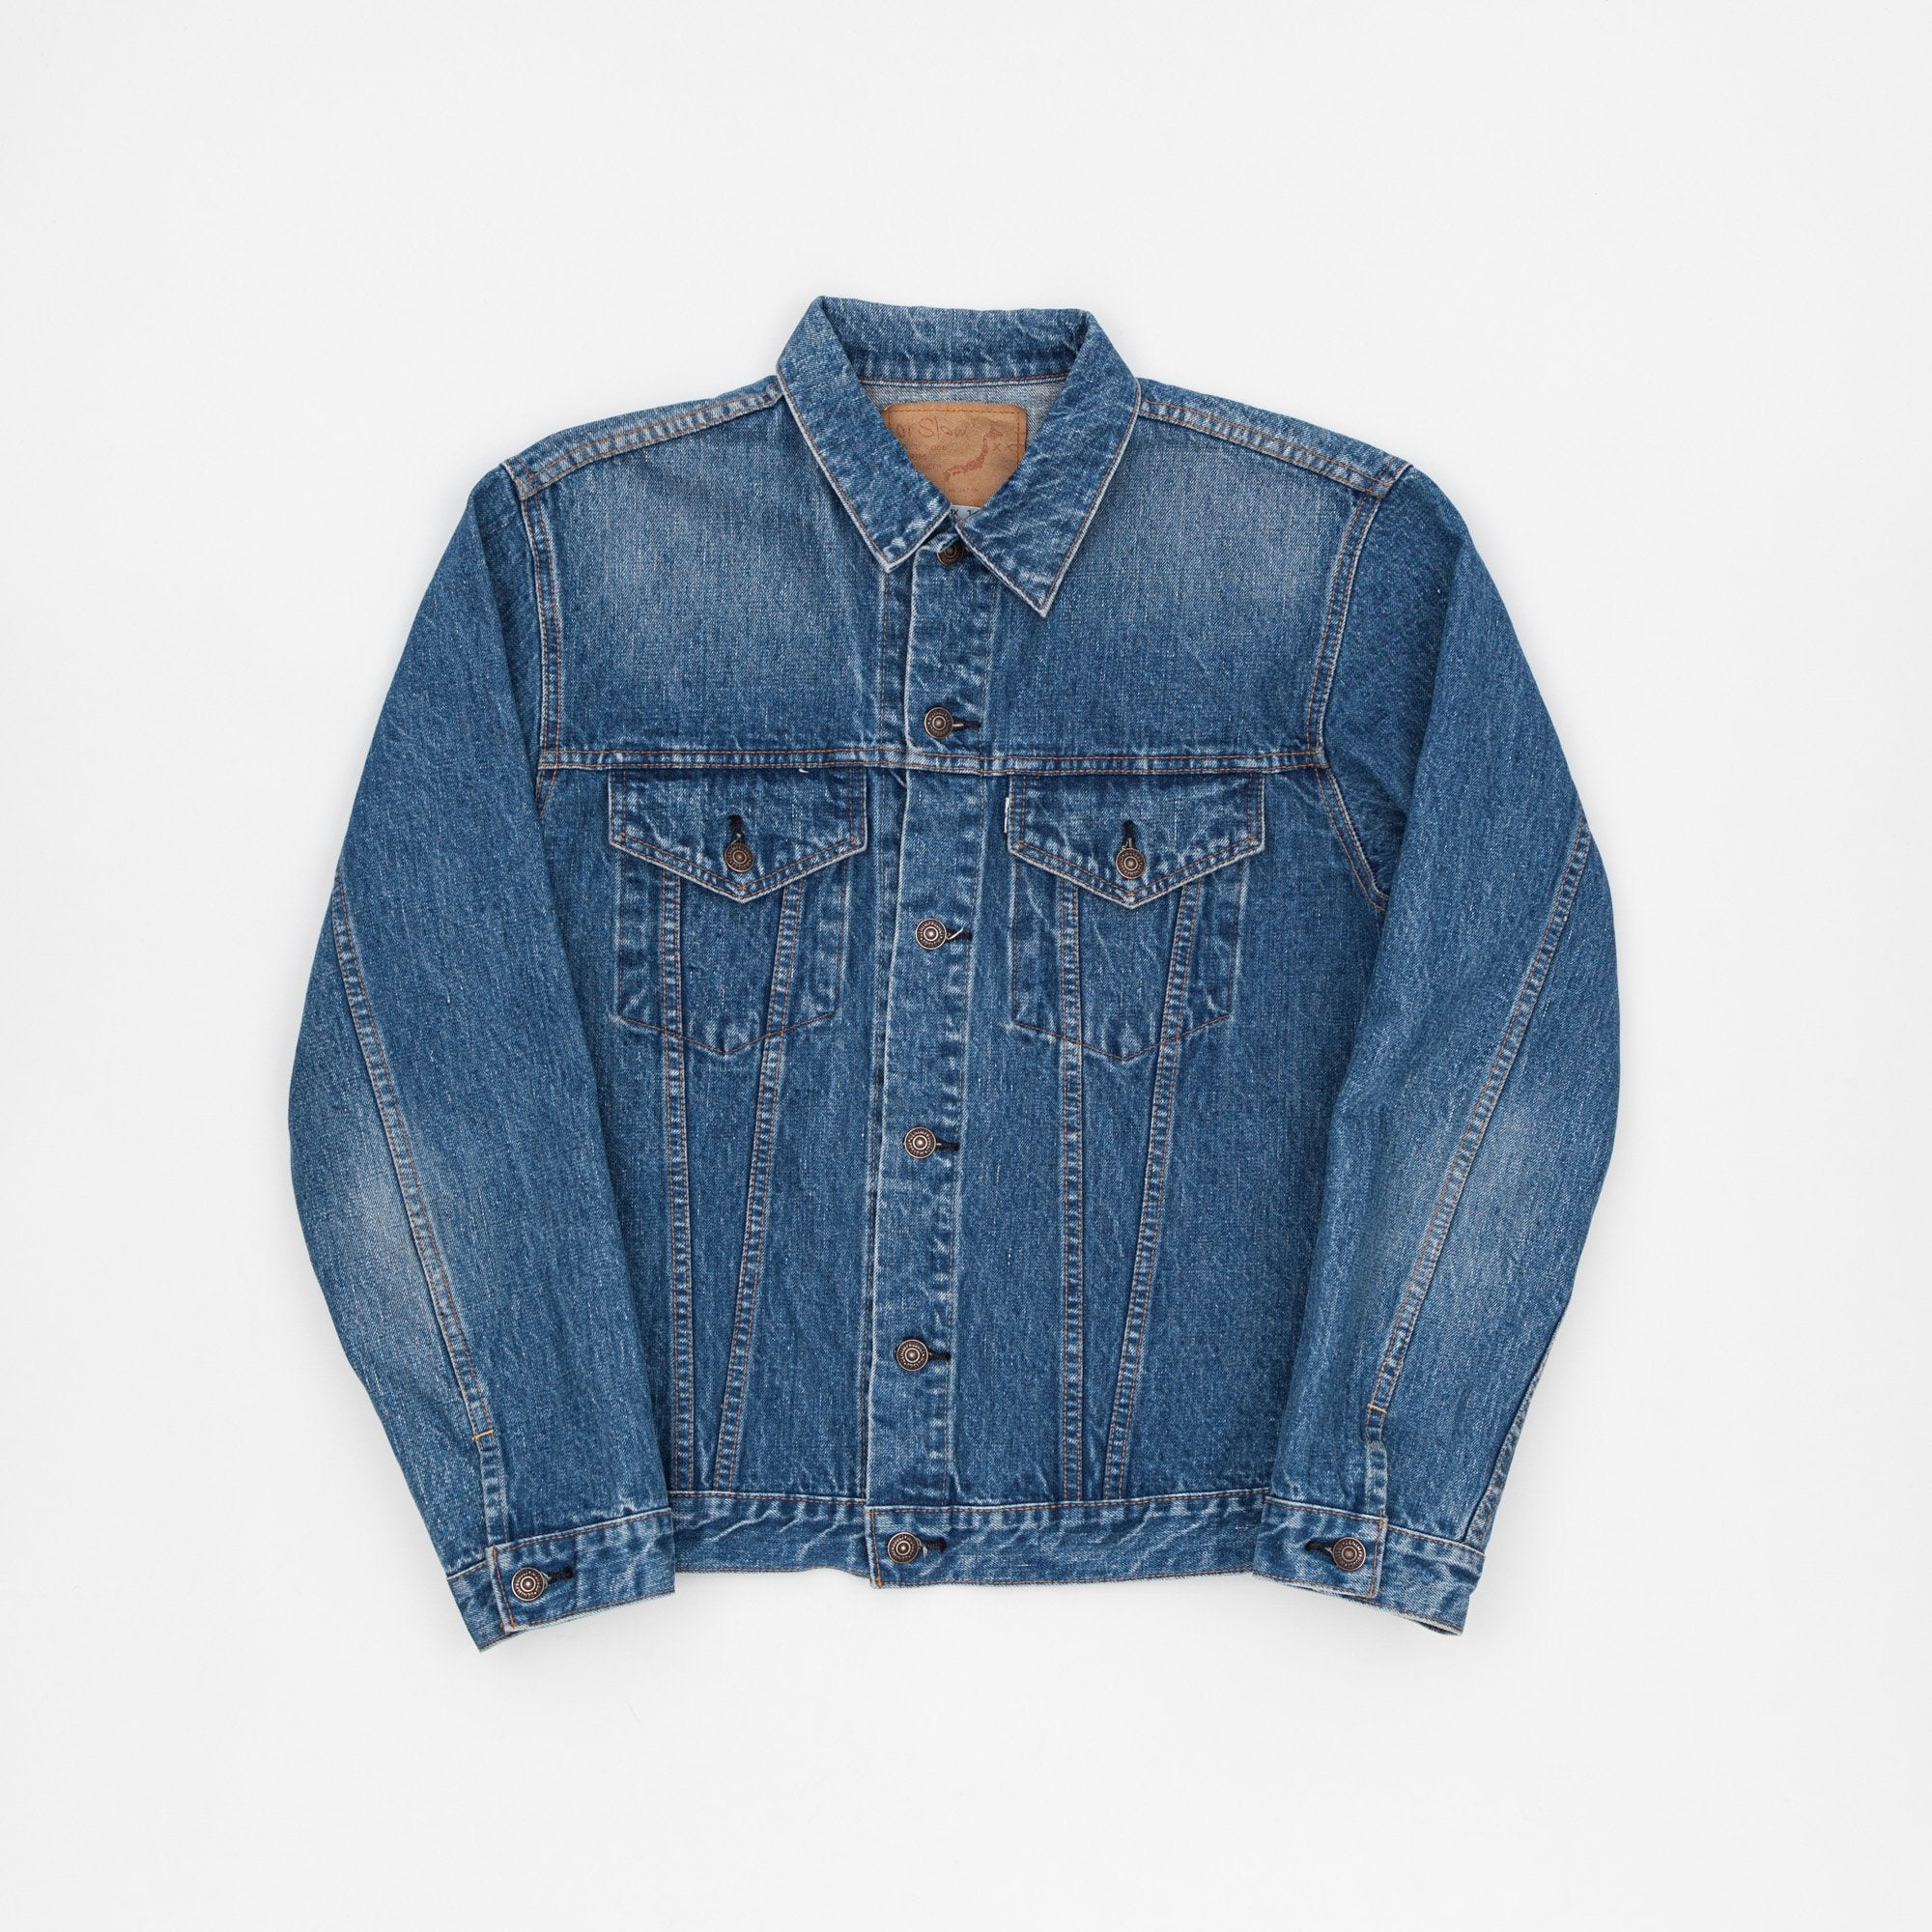 Orslow 1960s Trucker 2 Year Wash Denim Jacket